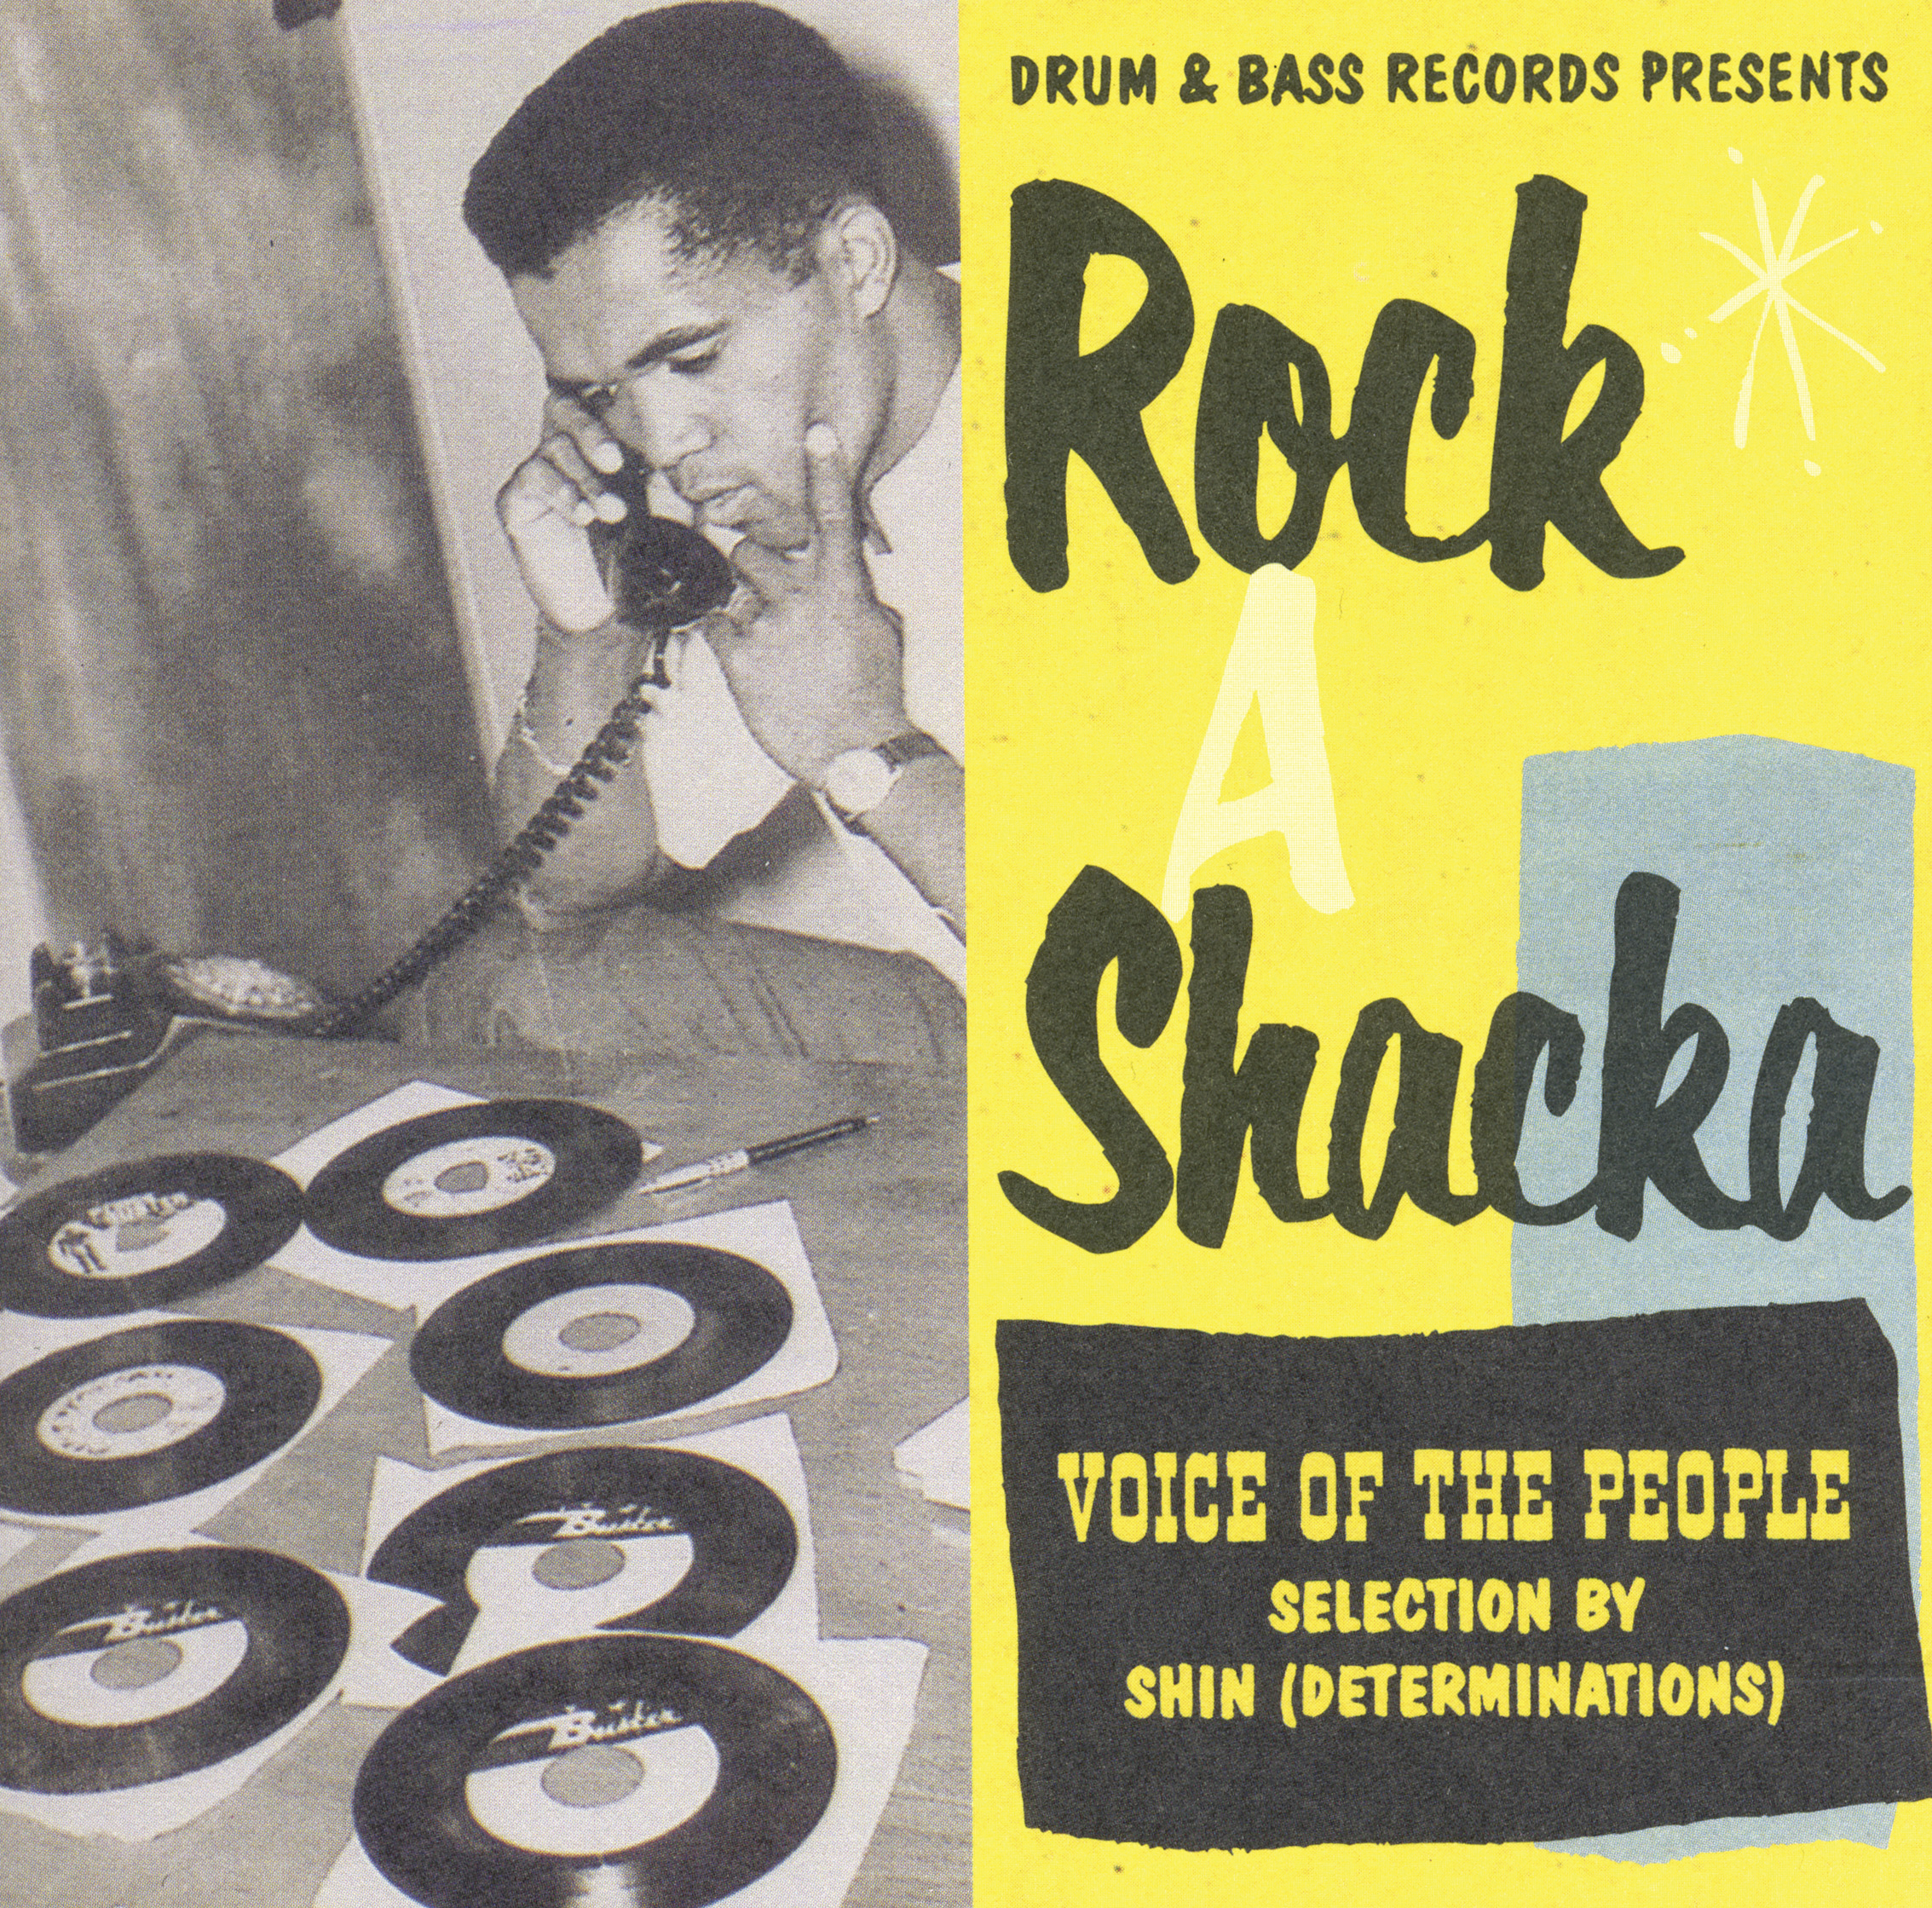 V.A.「ROCK A SHACKA」